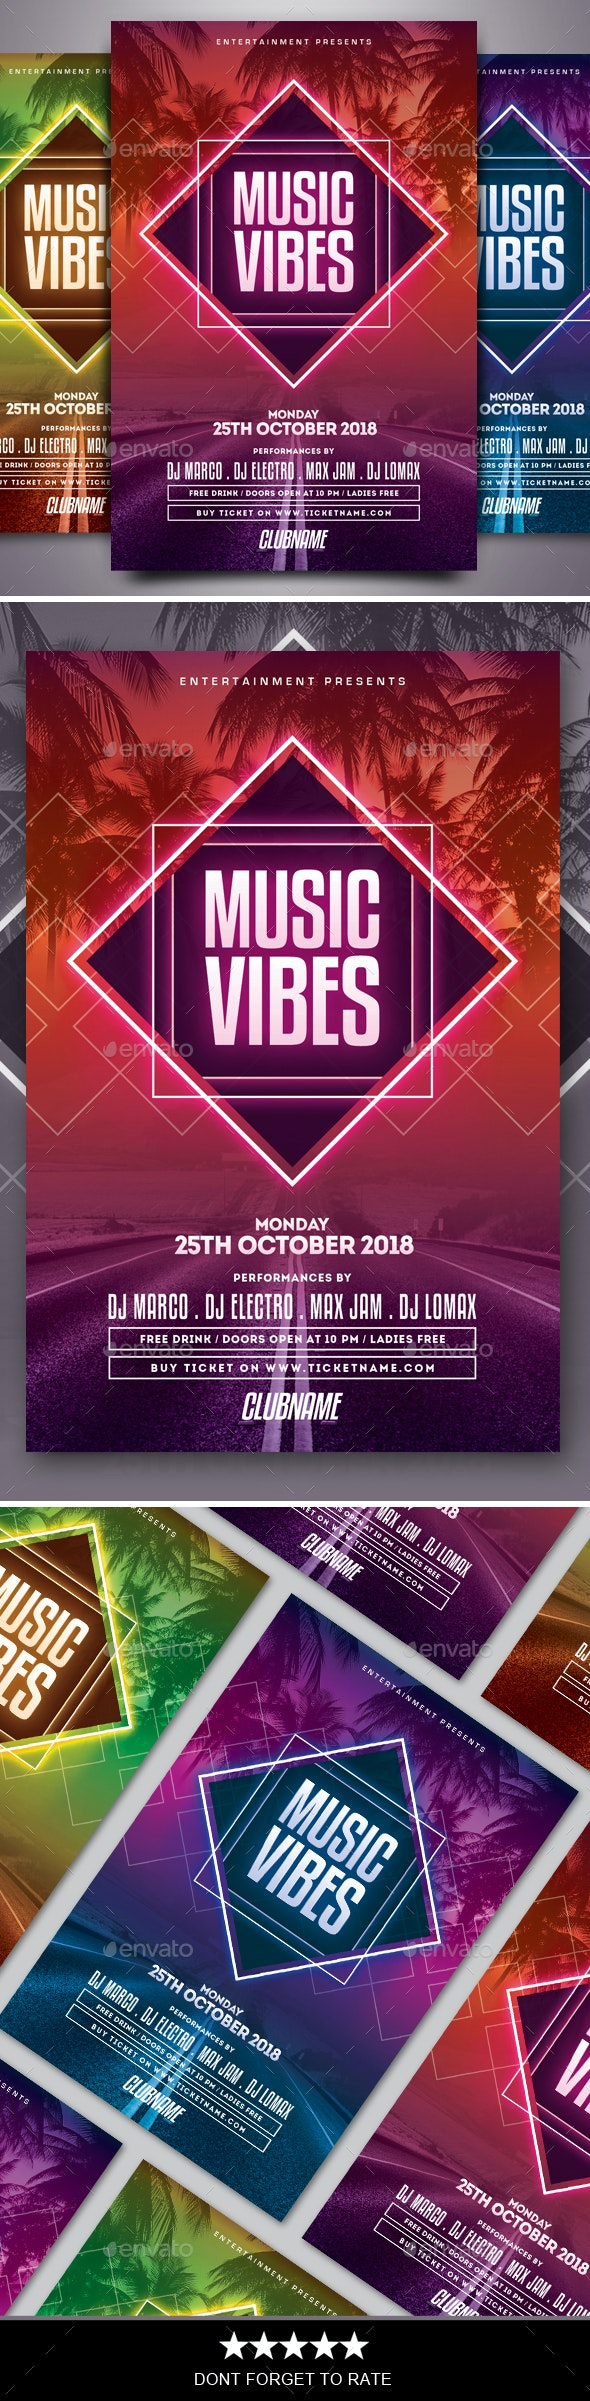 Music Vibes Flyer - Clubs & Parties Events